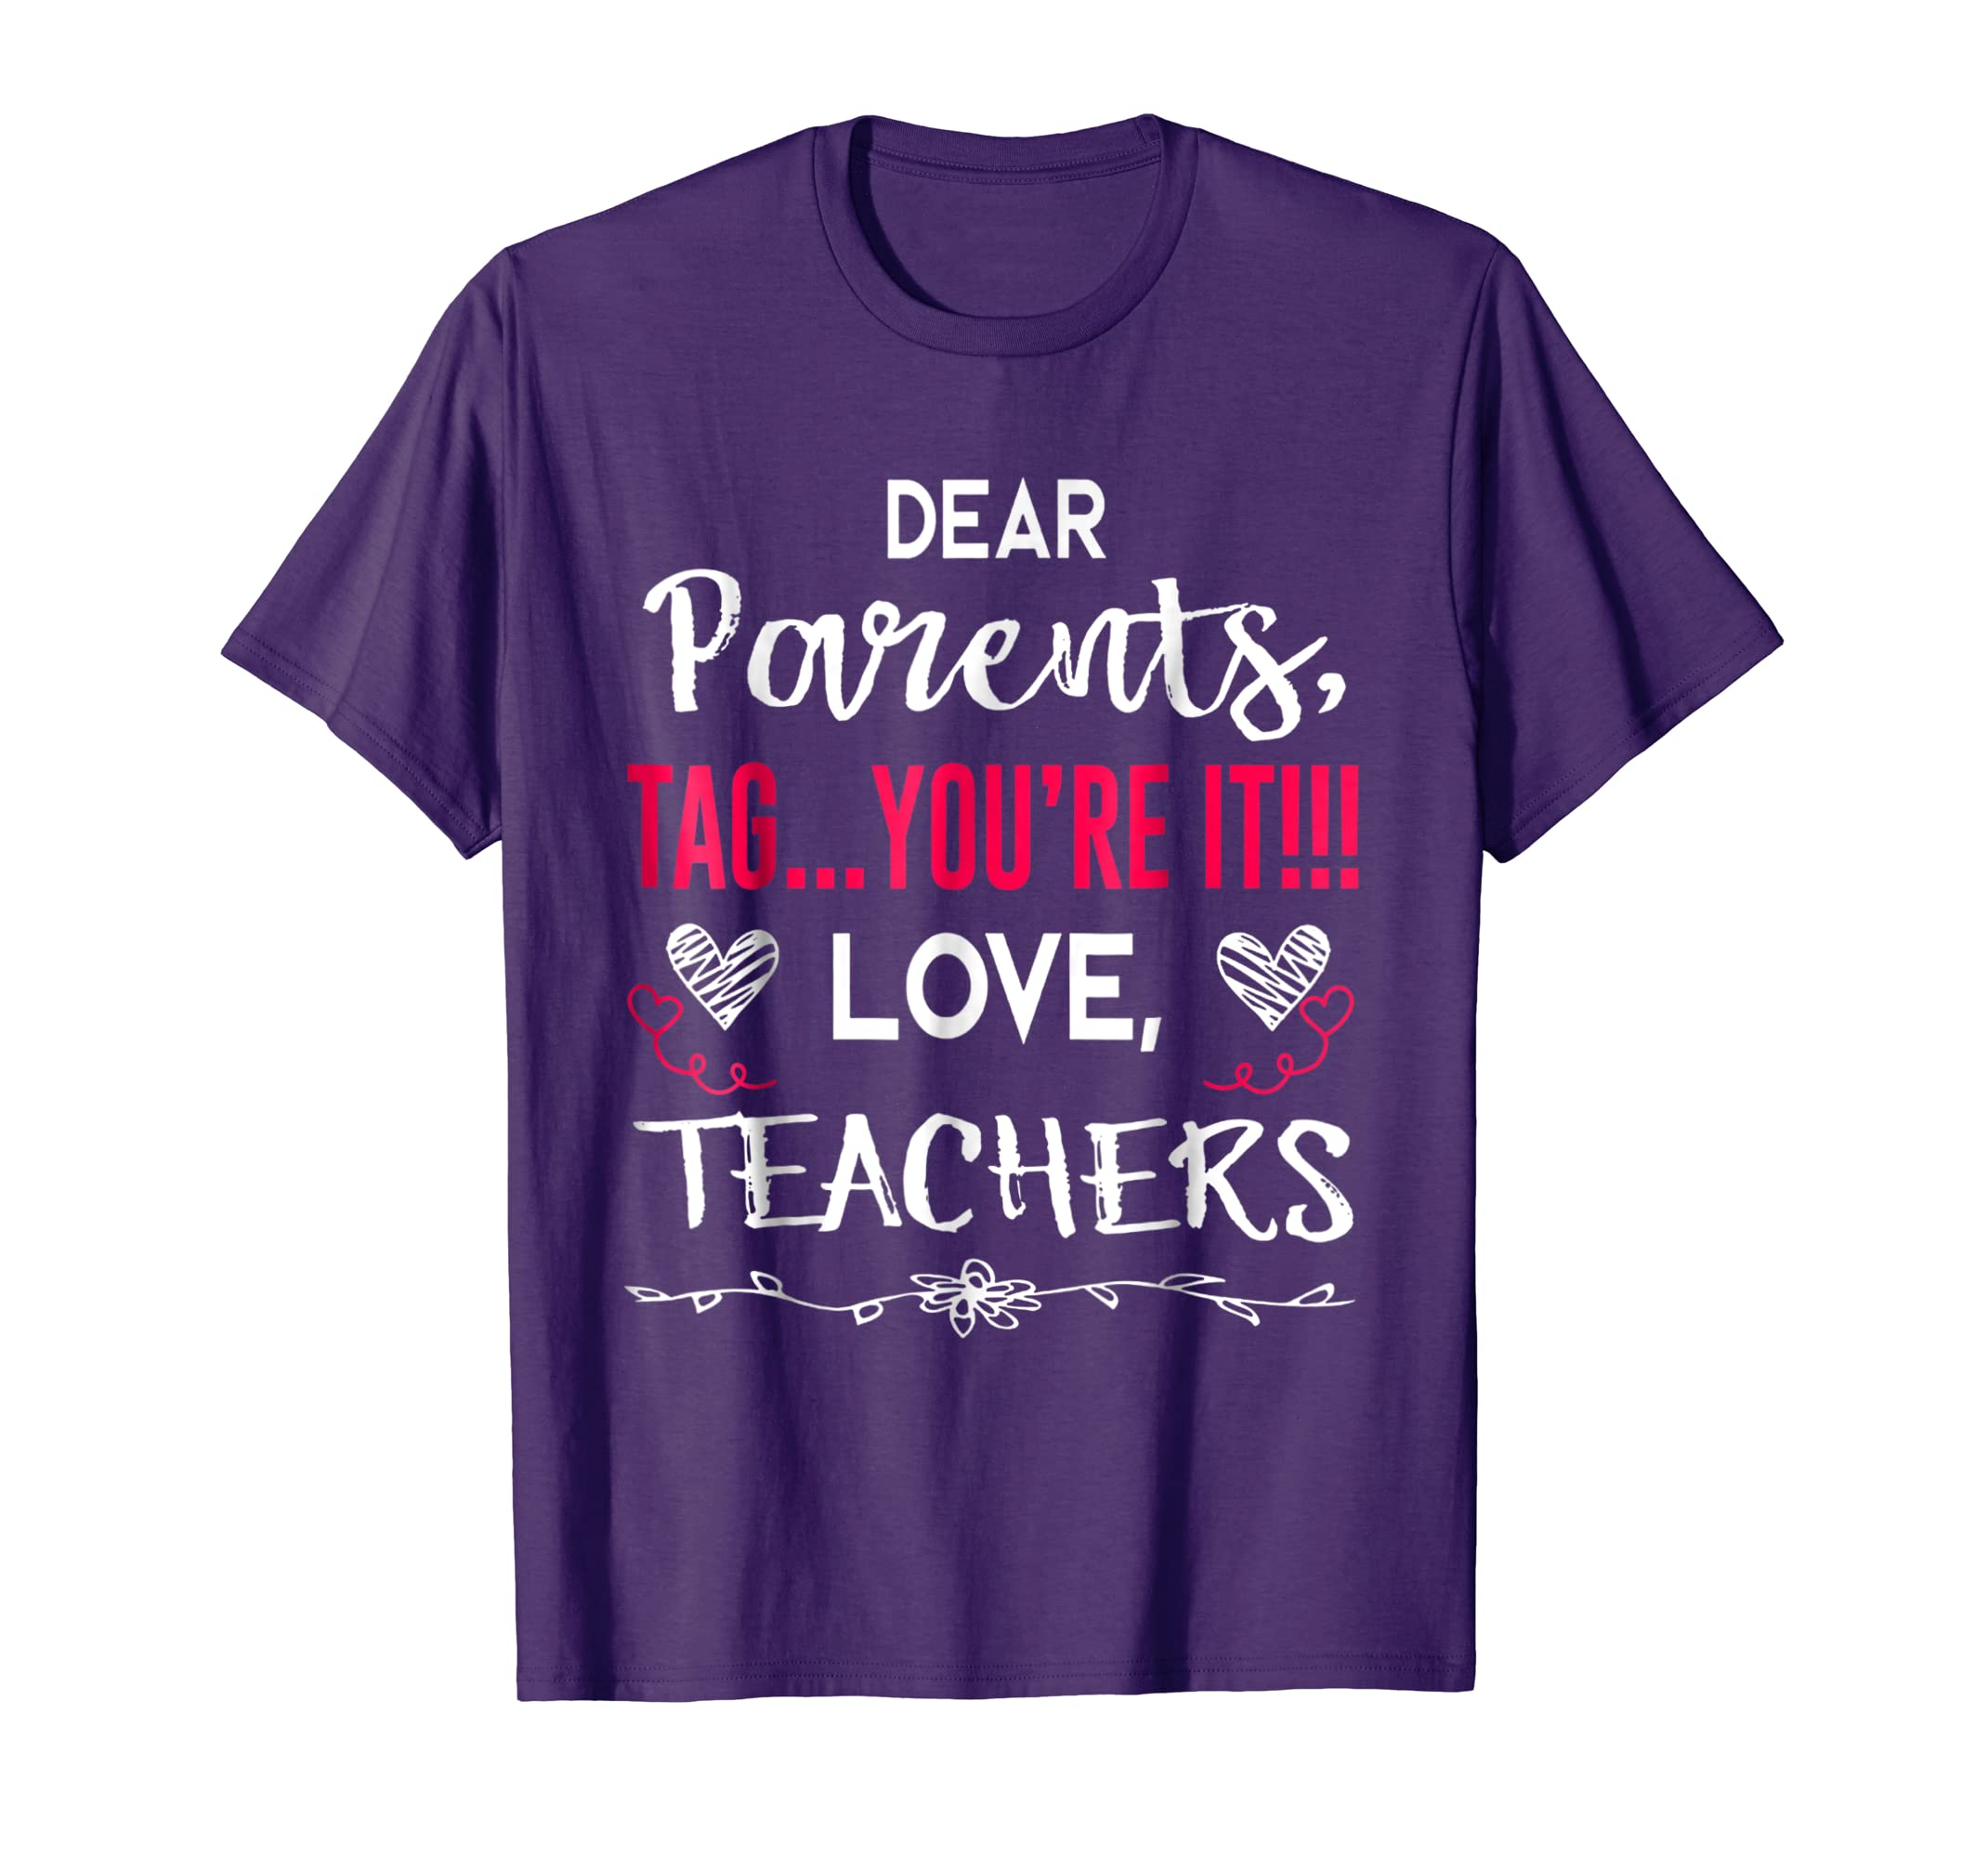 21dbbd22 Dear Parents Tag You're It Love Teachers T shirt Family Tee-alottee gift -  Alottee